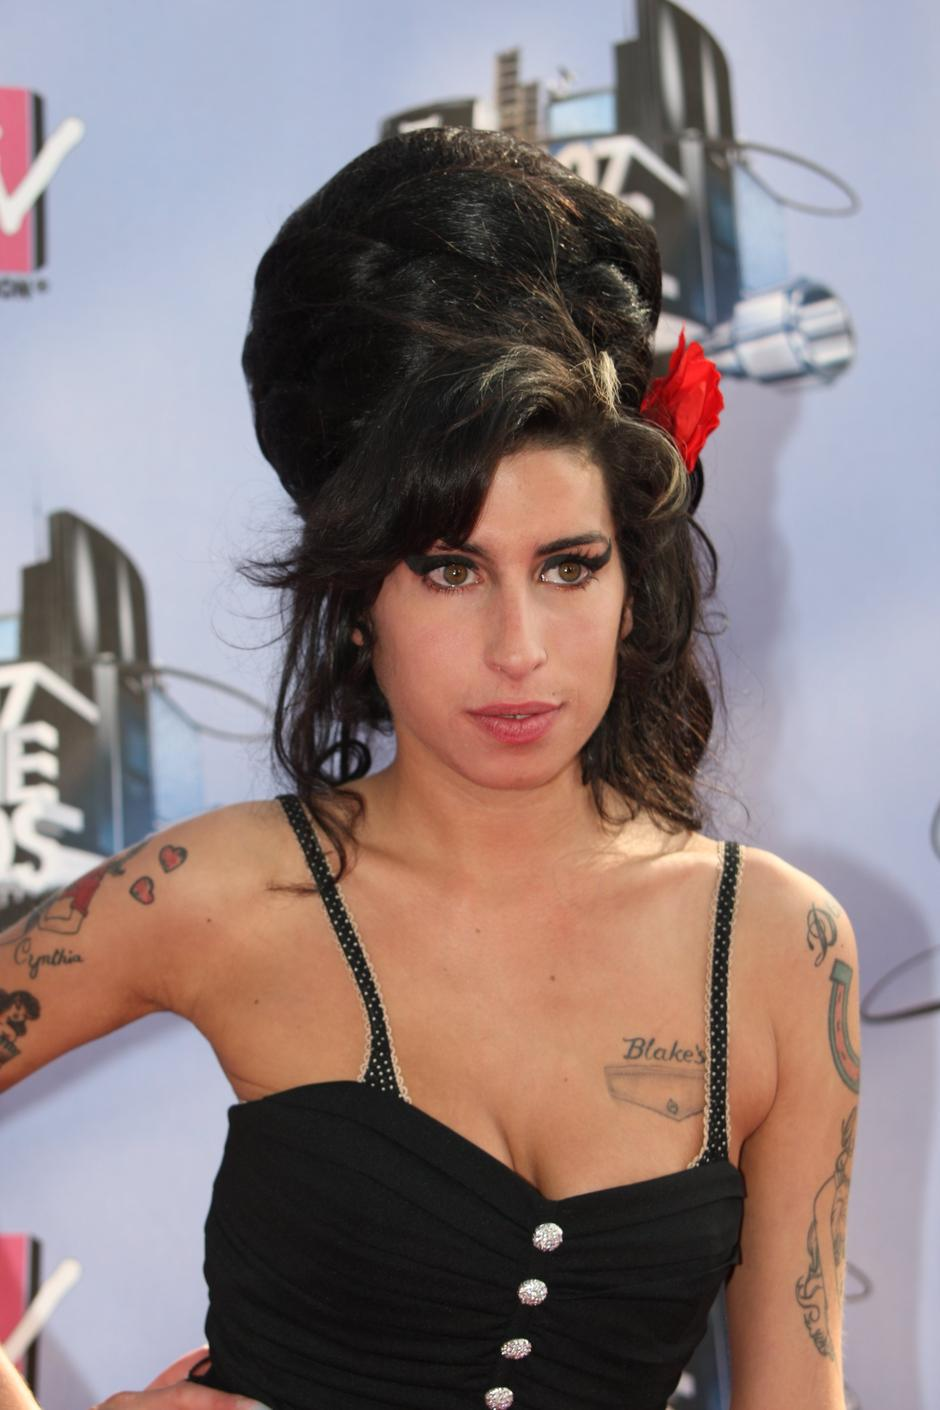 MTV Movie Awards -  Amy Winehouse | Autor: Hubert Boesl/DPA/PIXSELL